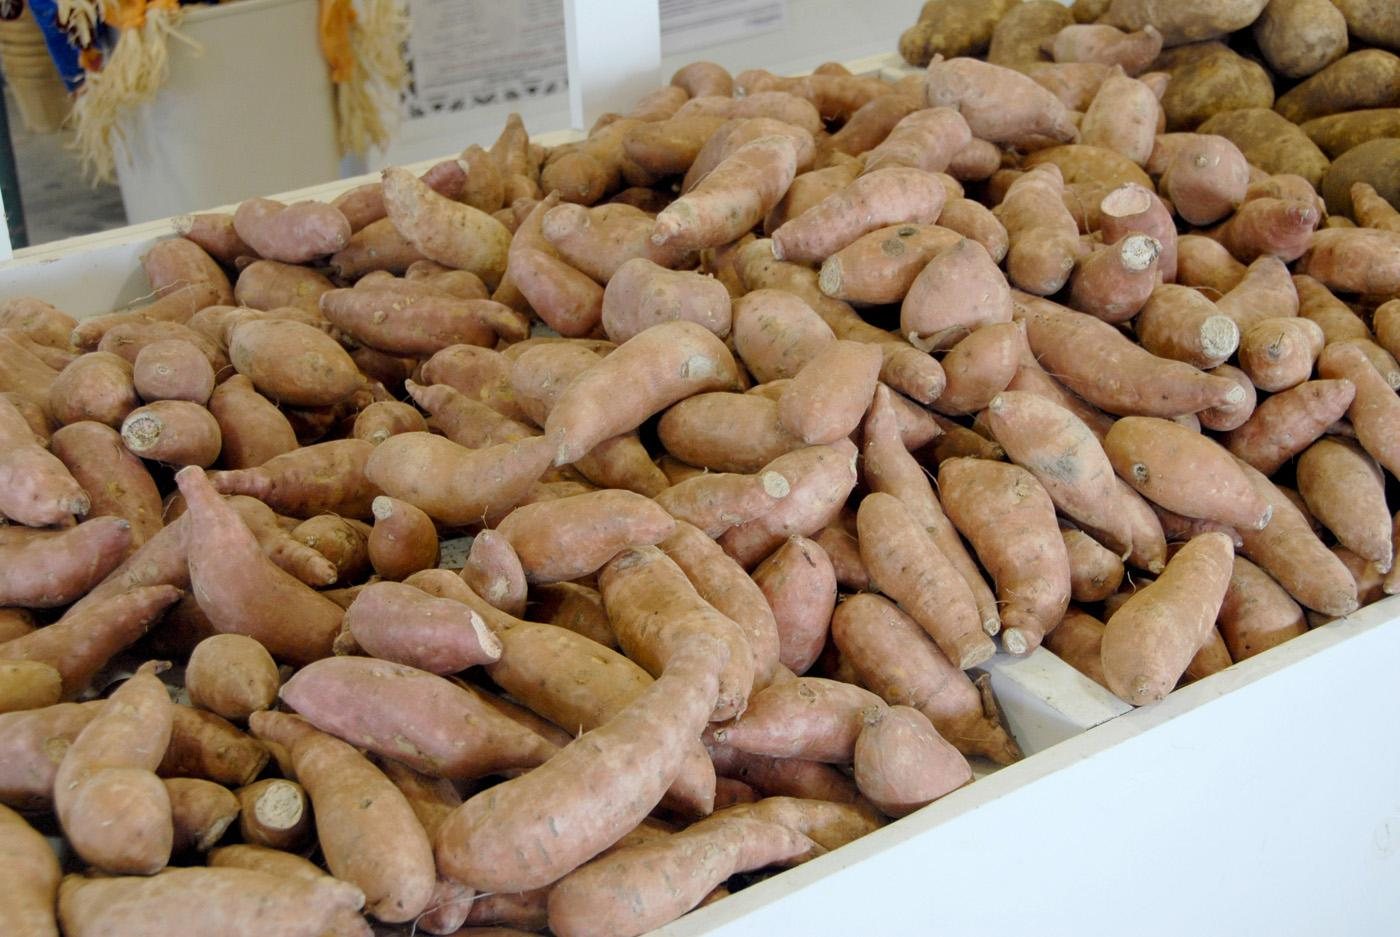 Mississippi's sweet potato industry has grown steadily, and today there are more than 90 sweet potato operations within 40 miles of Vardaman.